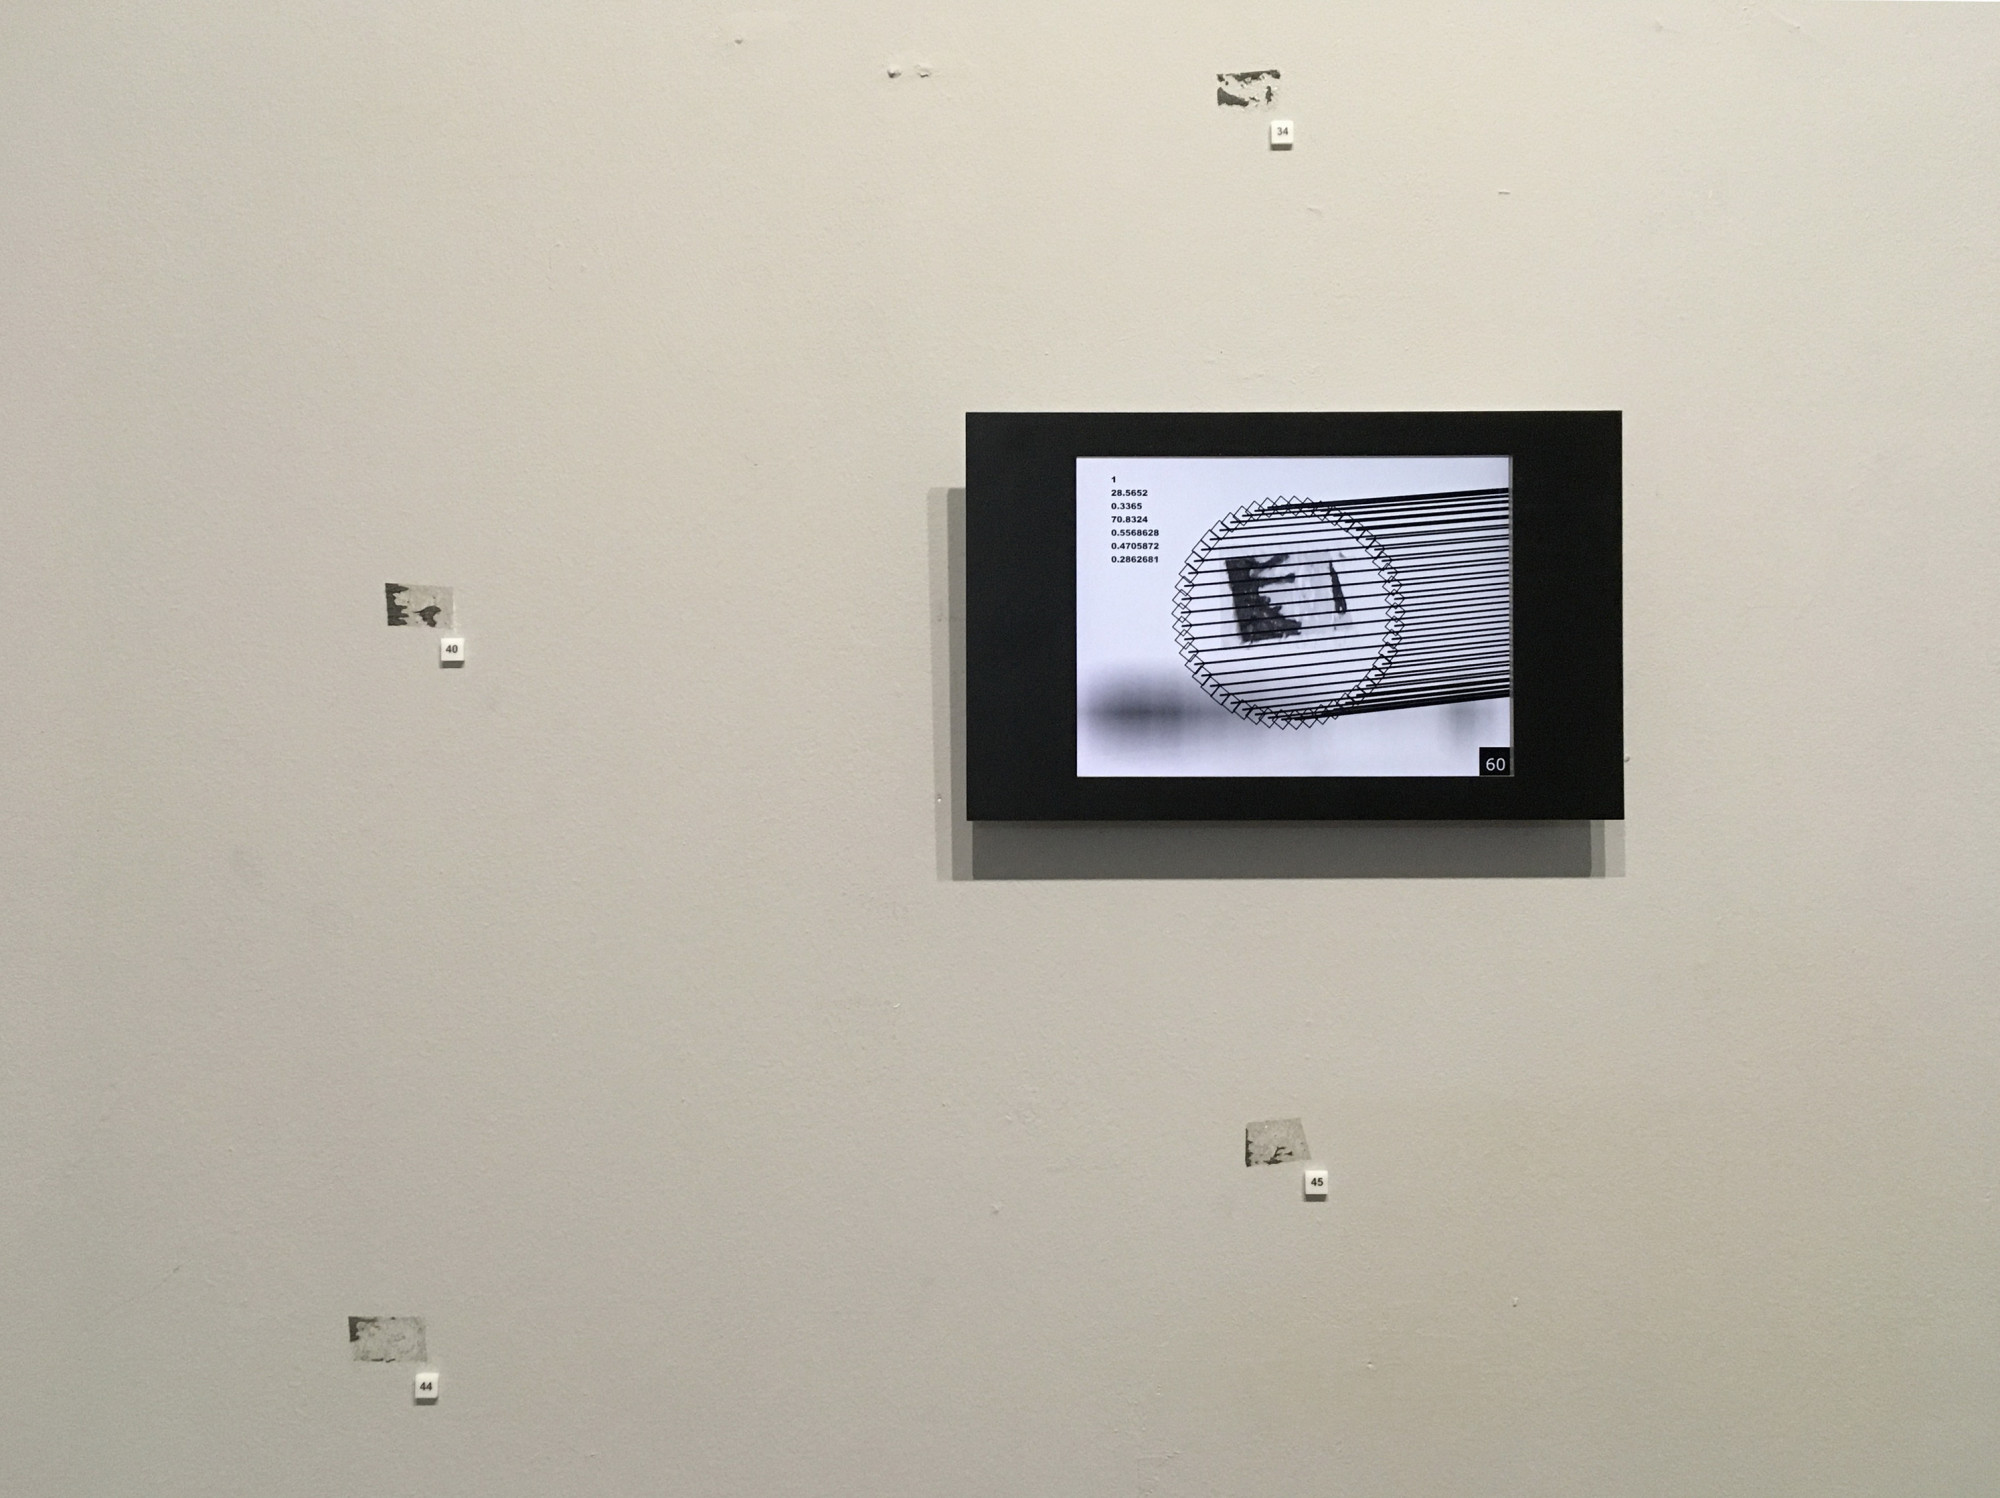 Fragment of the Tape Marks installation, 2o19. Impulse exhibition, Kuryokhin Centre, St Petersburg. An algorithm gathers information from tape marks that remained from a previous exhibition